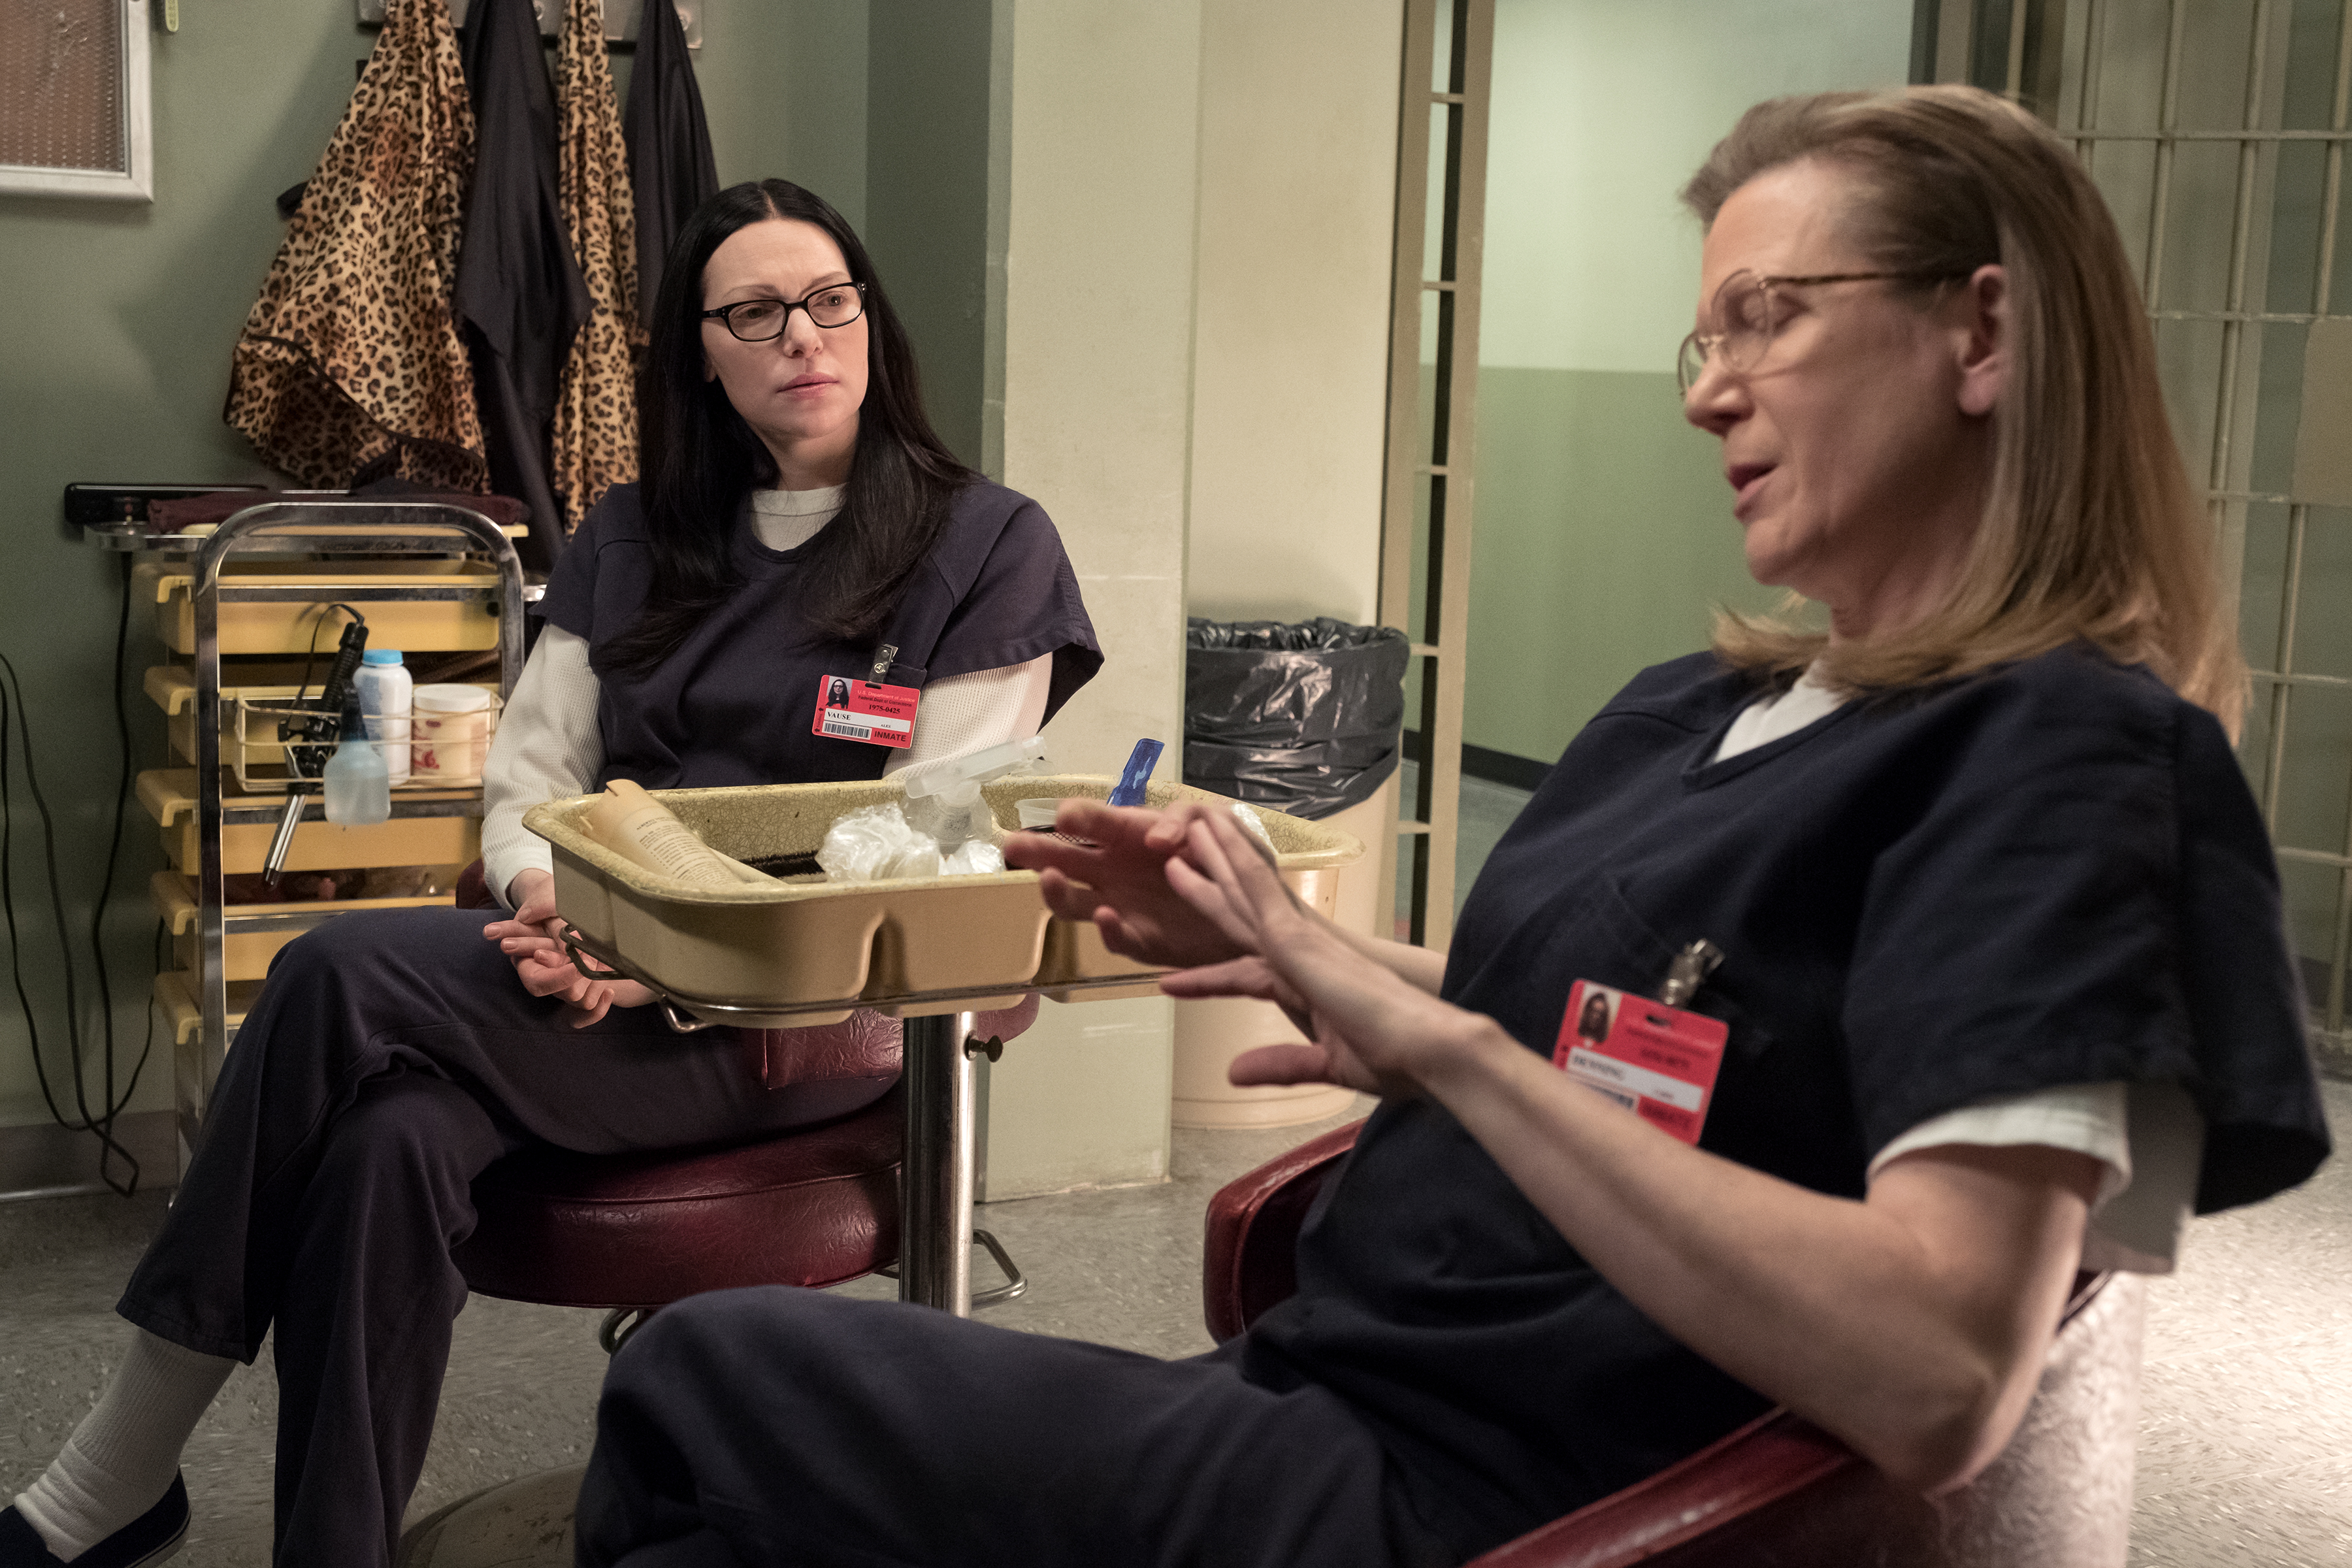 Alex  played by Laura Prepon and Carol Denning chat in Orange is the New Black. Source: Netflix